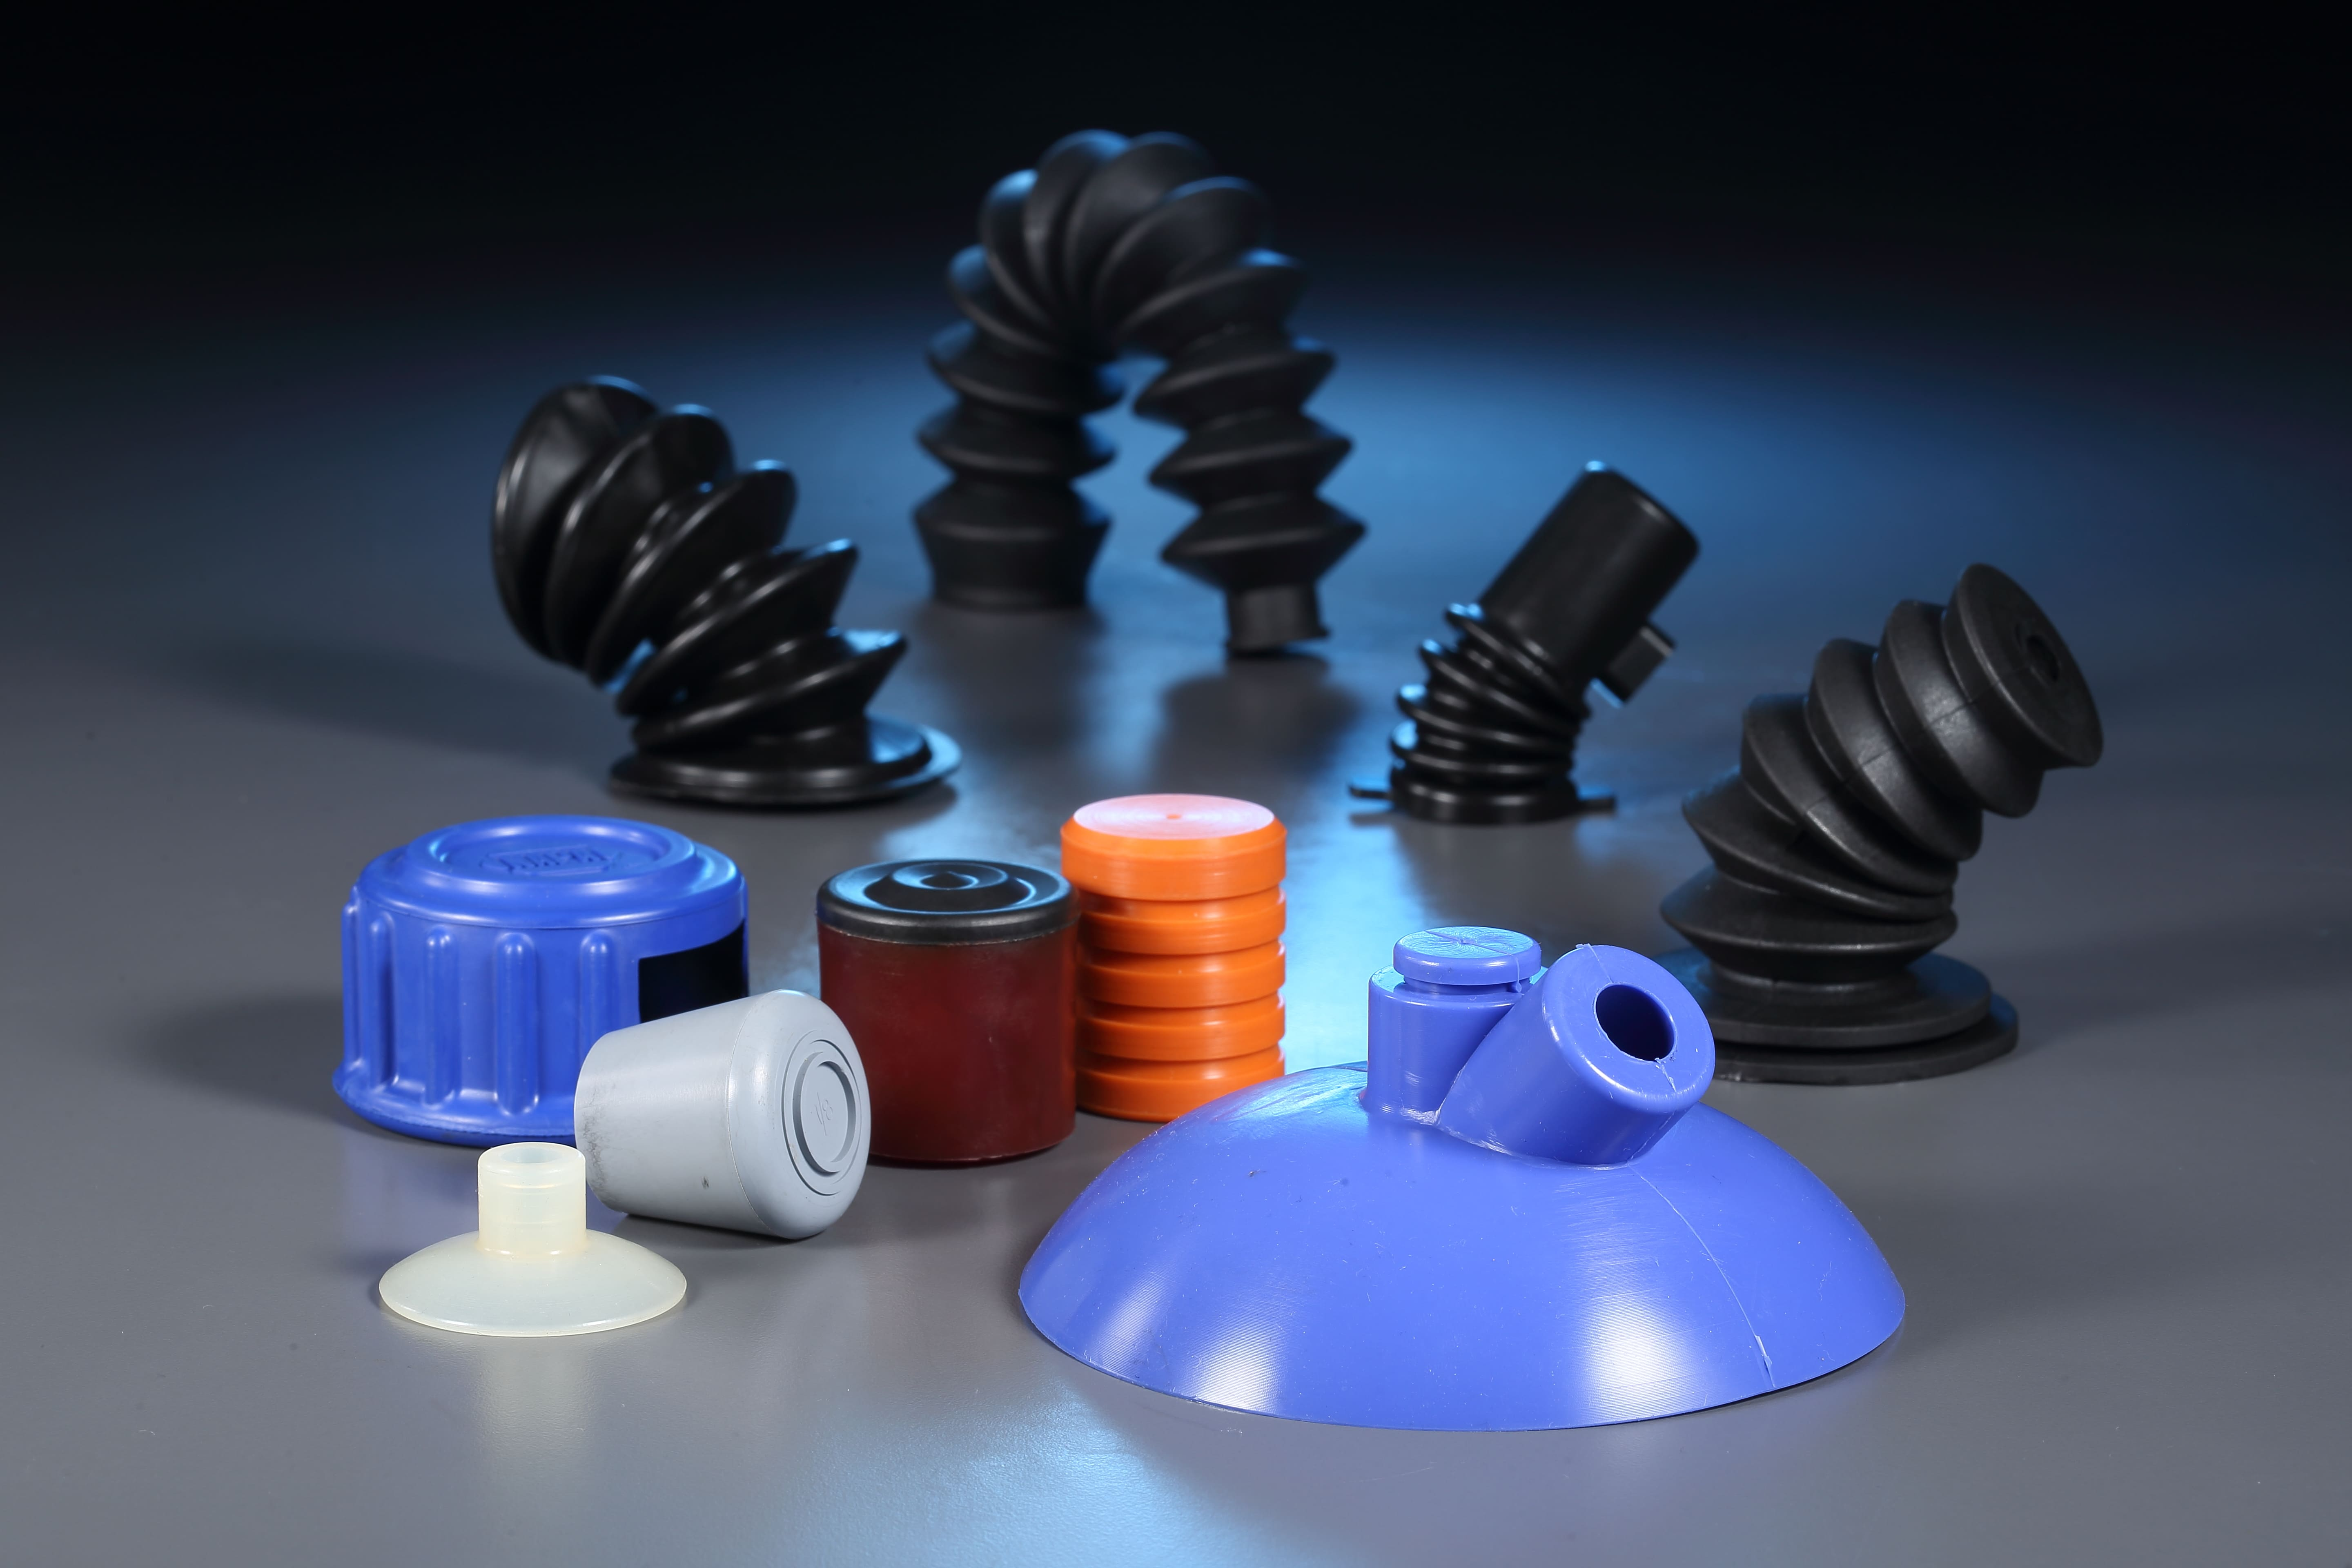 Bus Drive Shaft Boots for Rubber, Plastic Parts made by Yee Ming Ying Co., LTD. 昱銘穎有限公司 - MatchSupplier.com